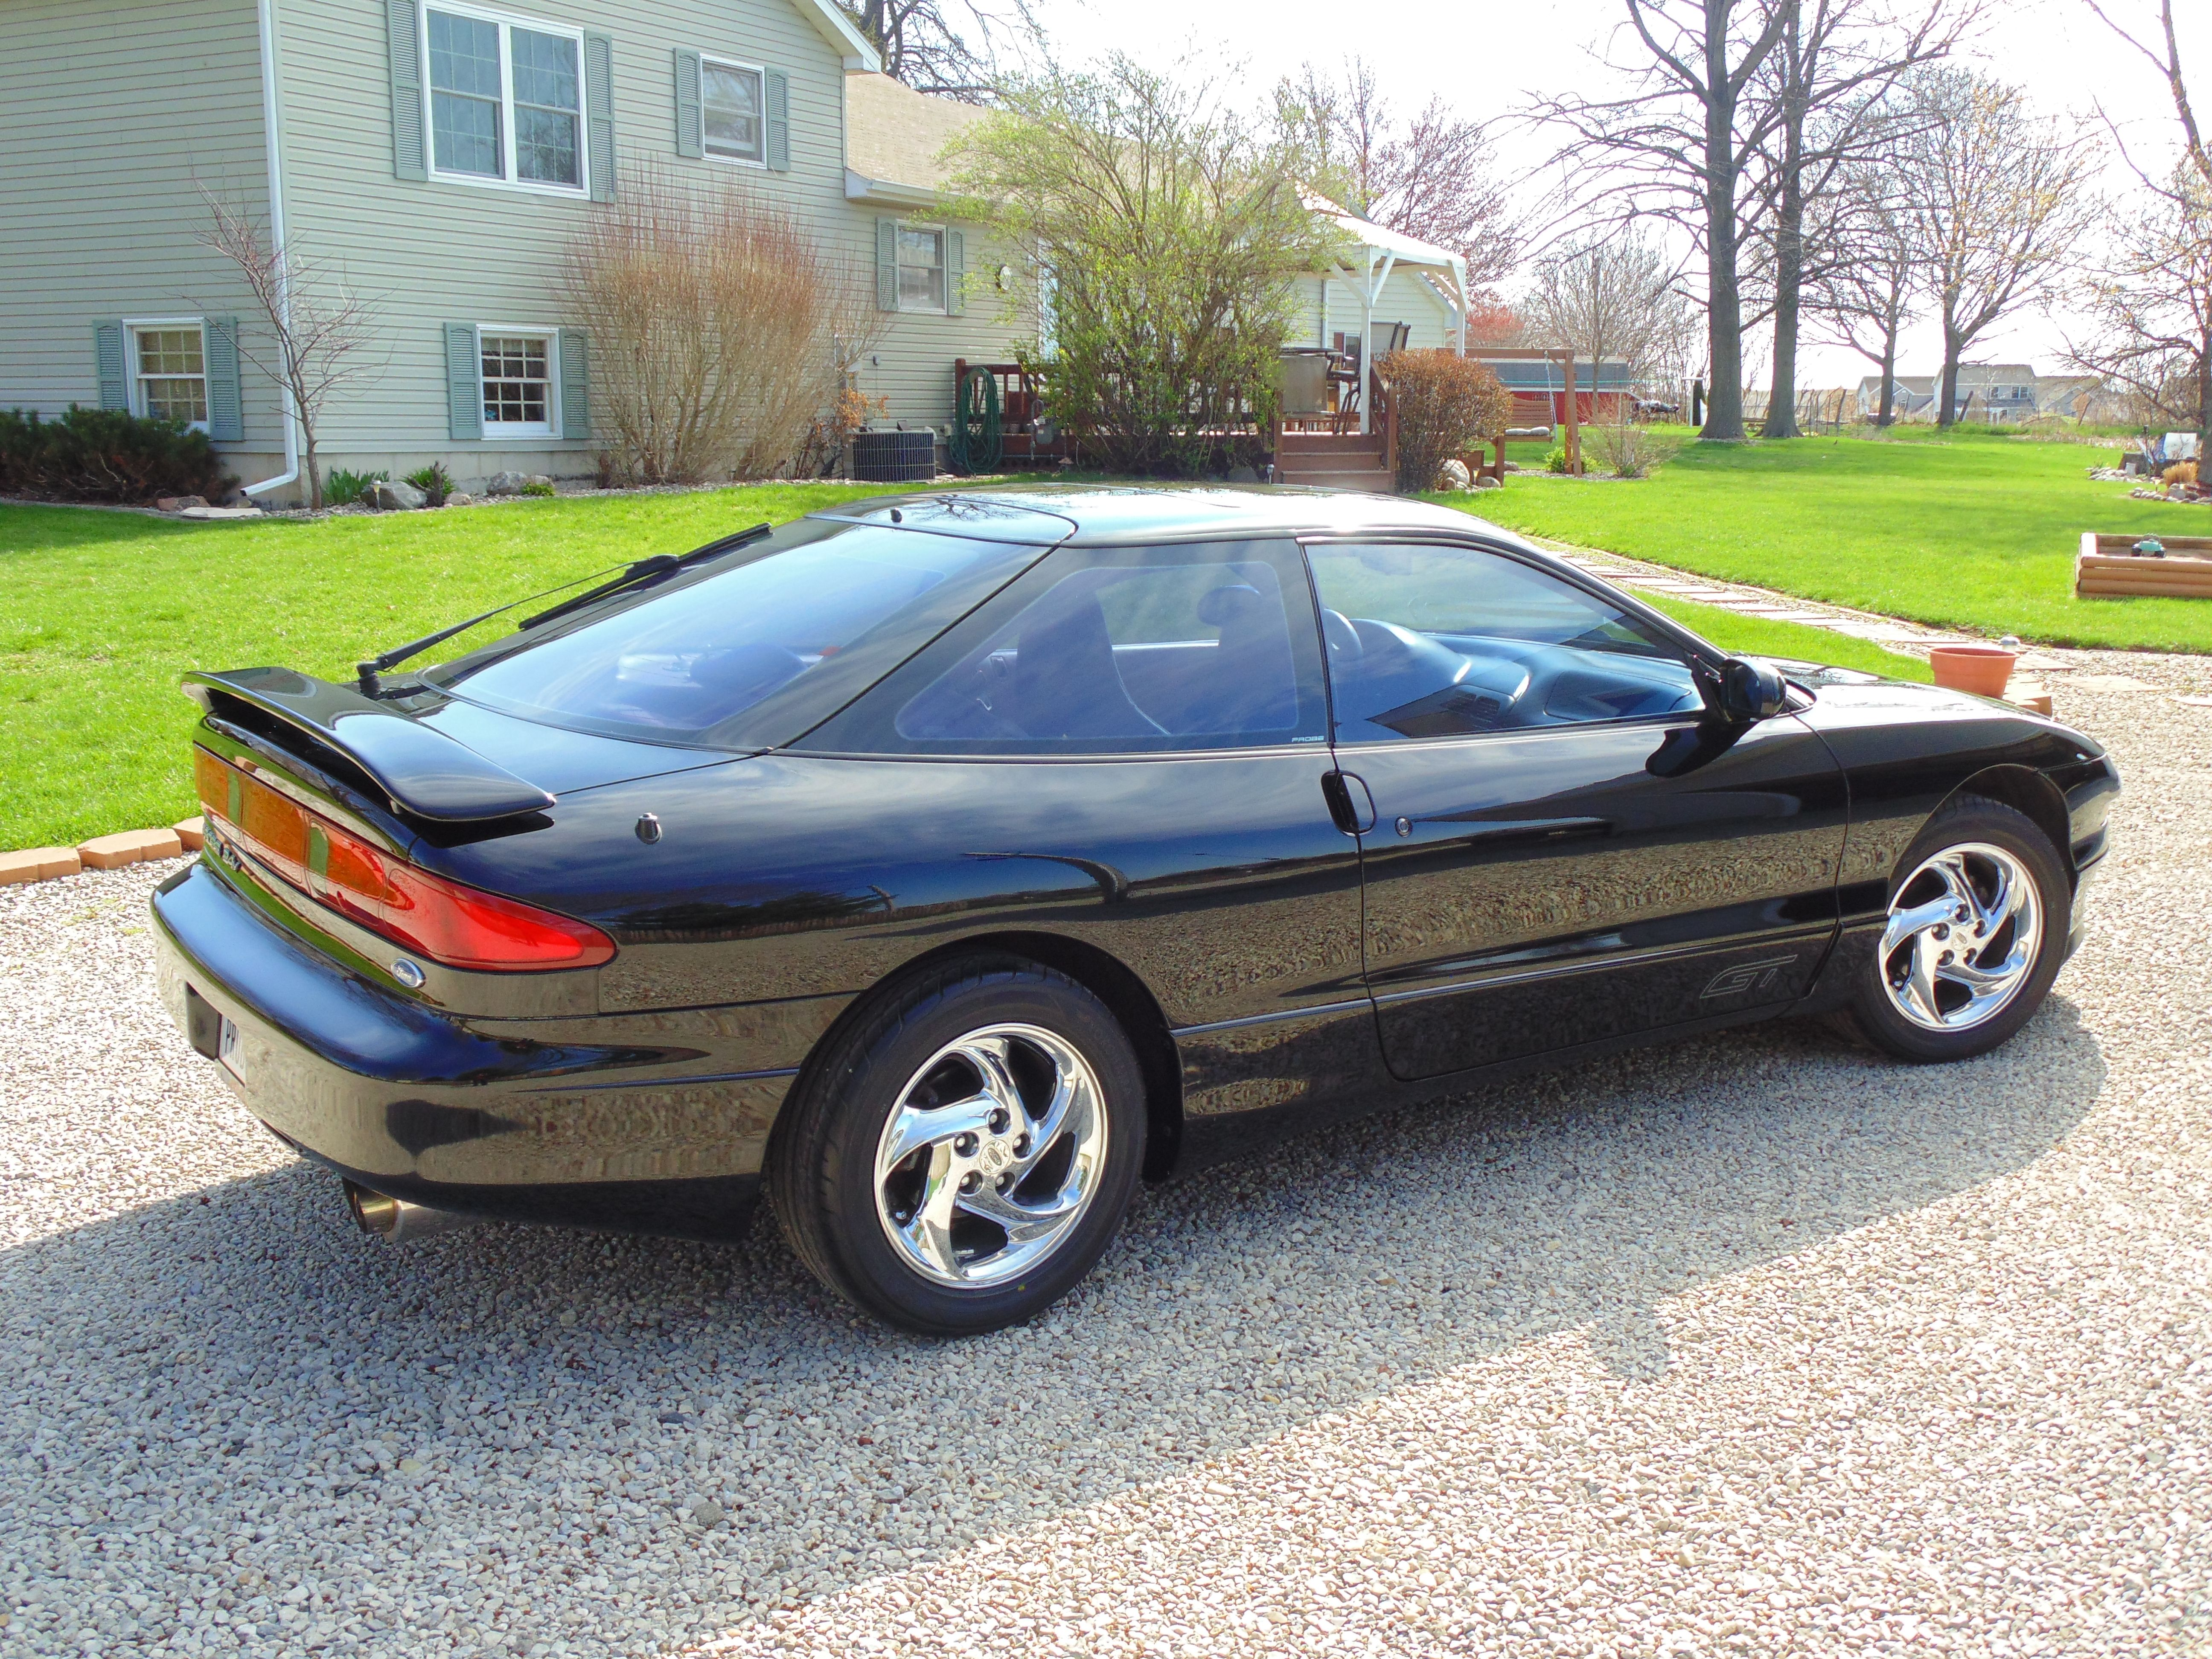 95 Probe Gt Ford Probe Gt Ford Probe 1979 Mustang